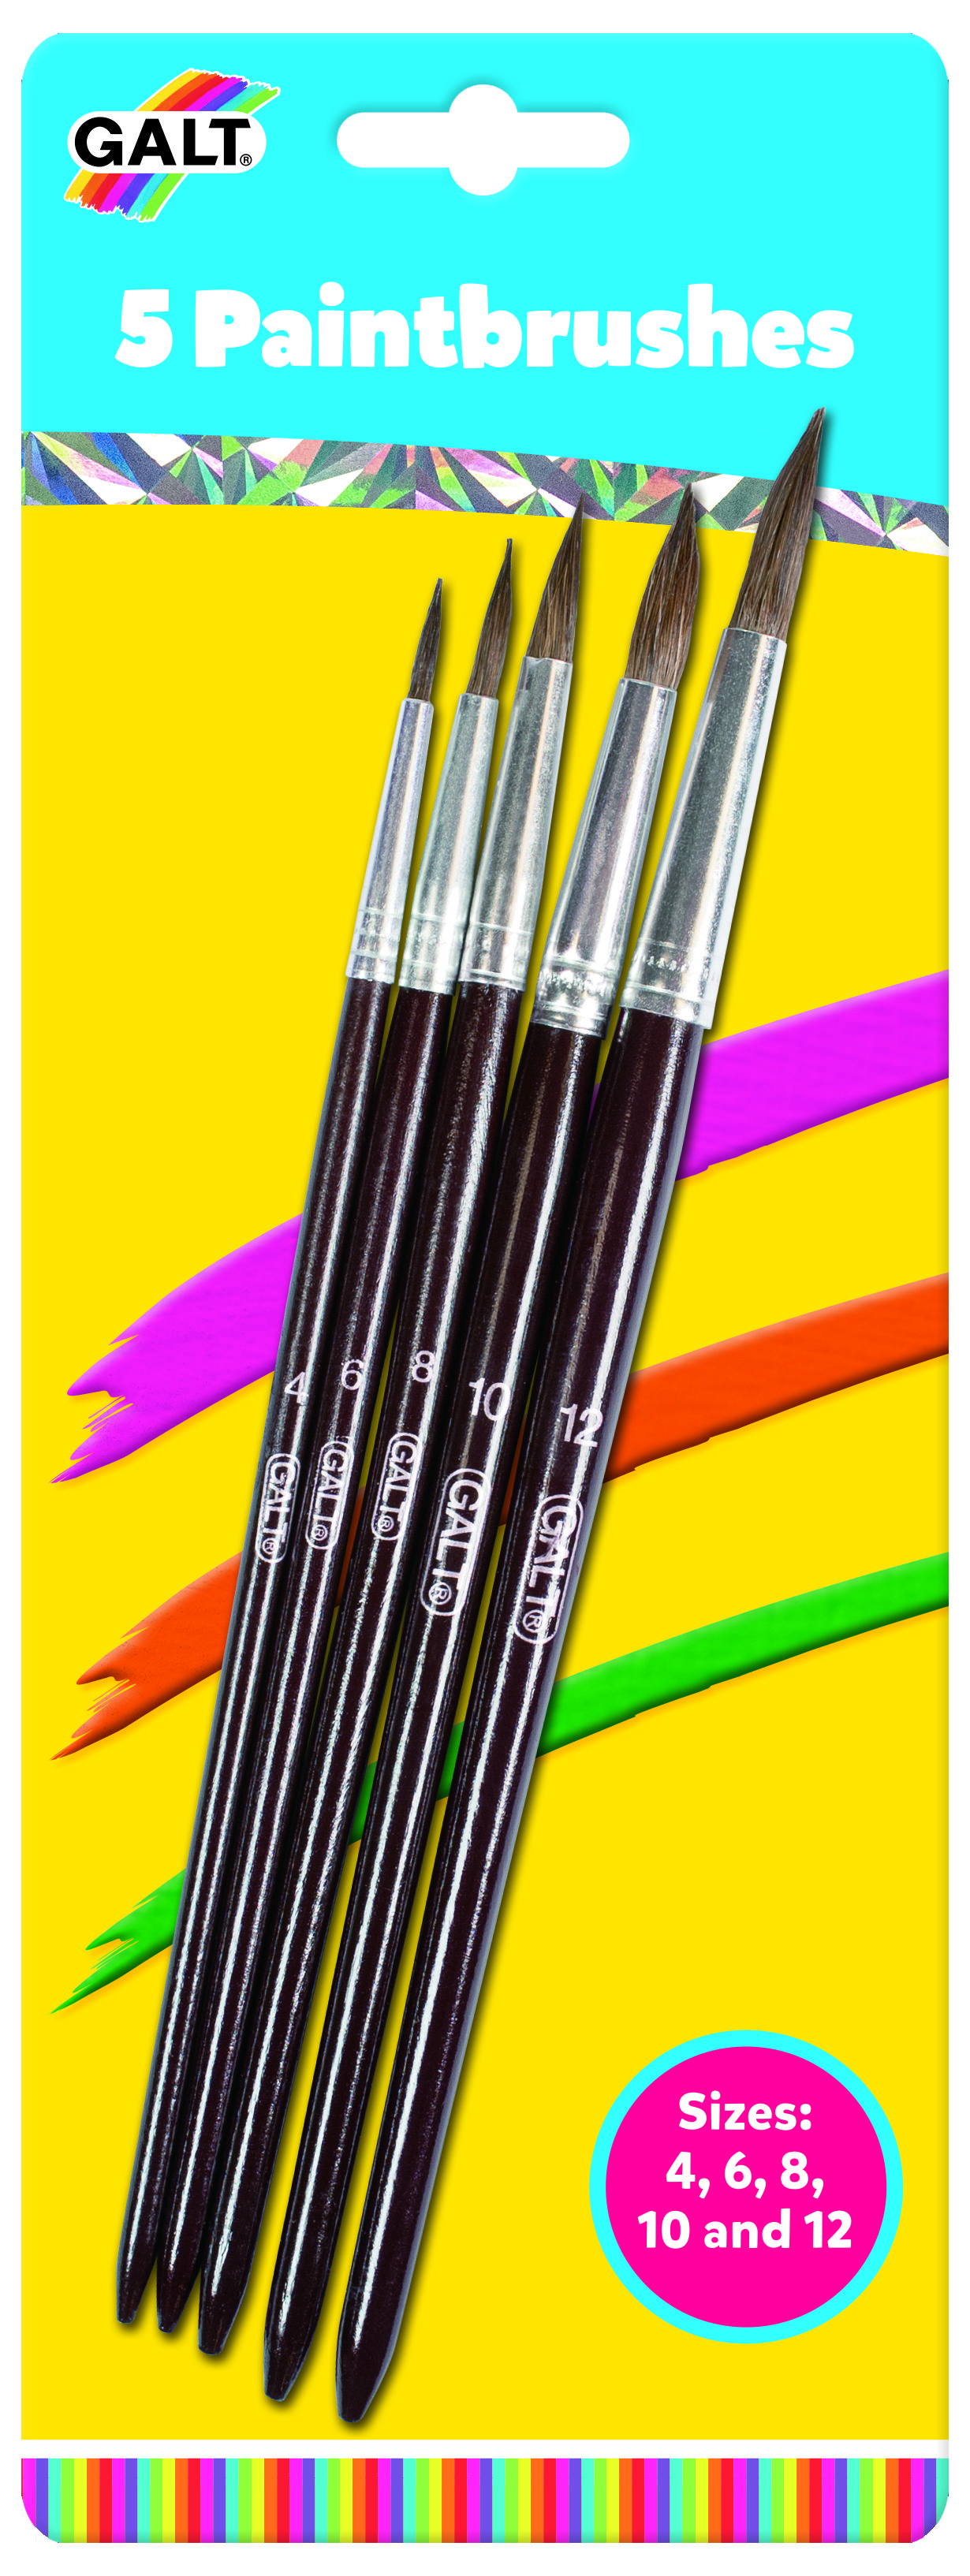 5 Paintbrushes by Galt